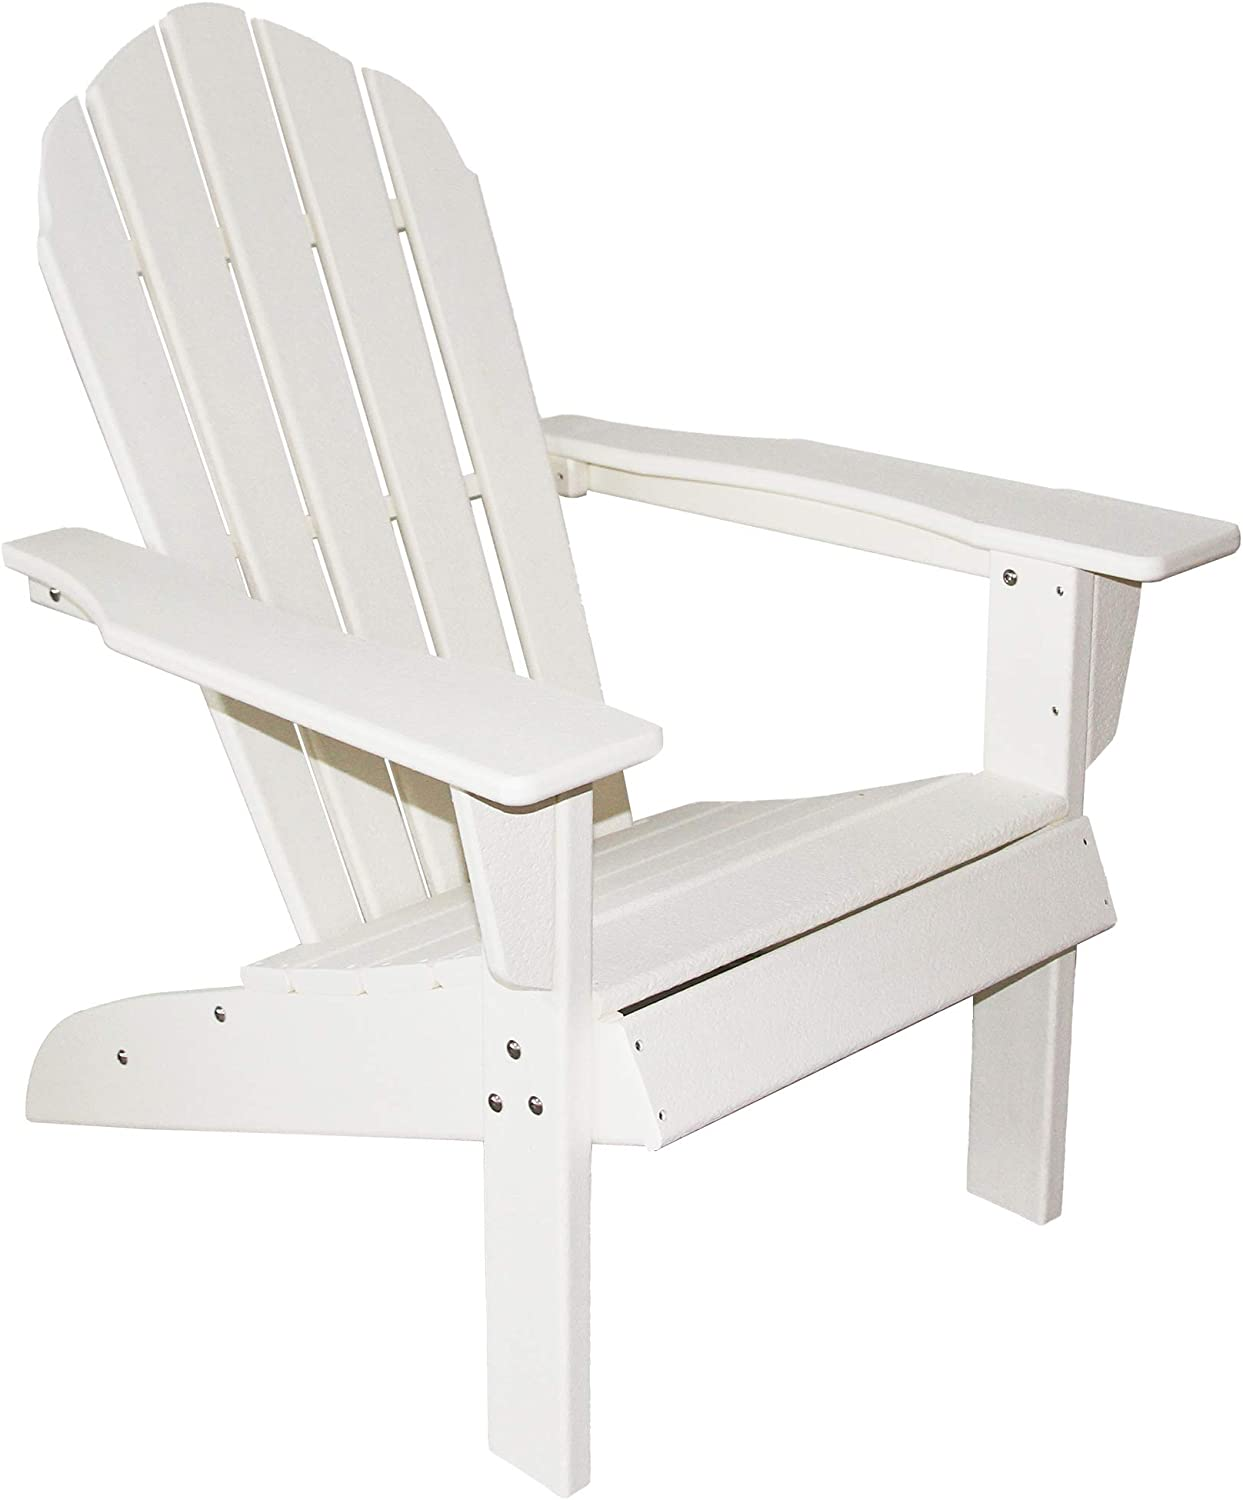 Resin TEAK HDPE Poly Lumber Adirondack Chair, White   Adult-Size, Weather Resistant for Patio Deck Garden, Backyard & Lawn Furniture   Easy Maintenance & Classic Adirondack Chair Design